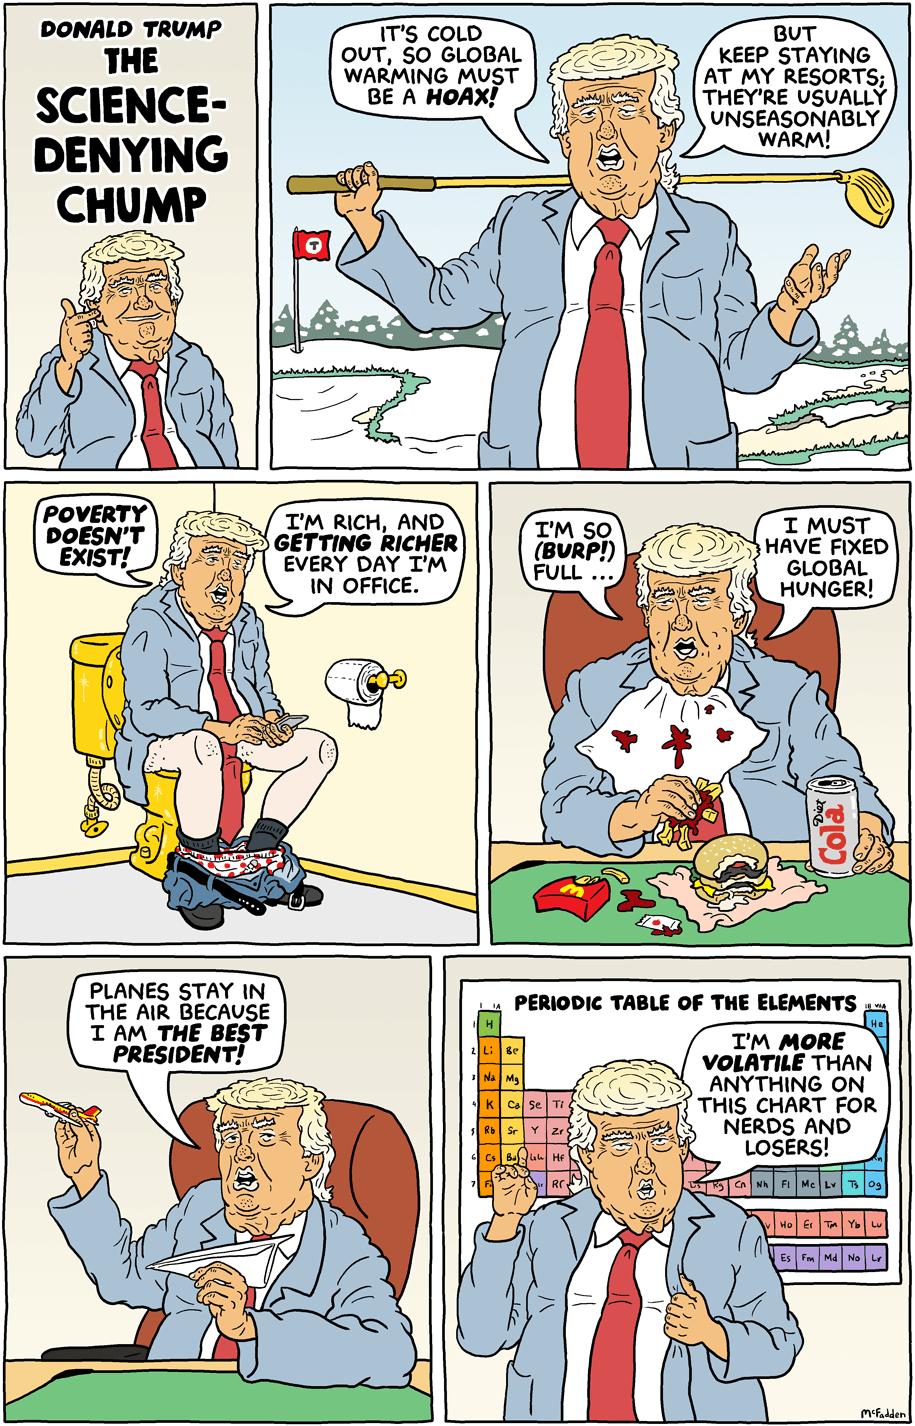 Cartoon: The science-denying chump